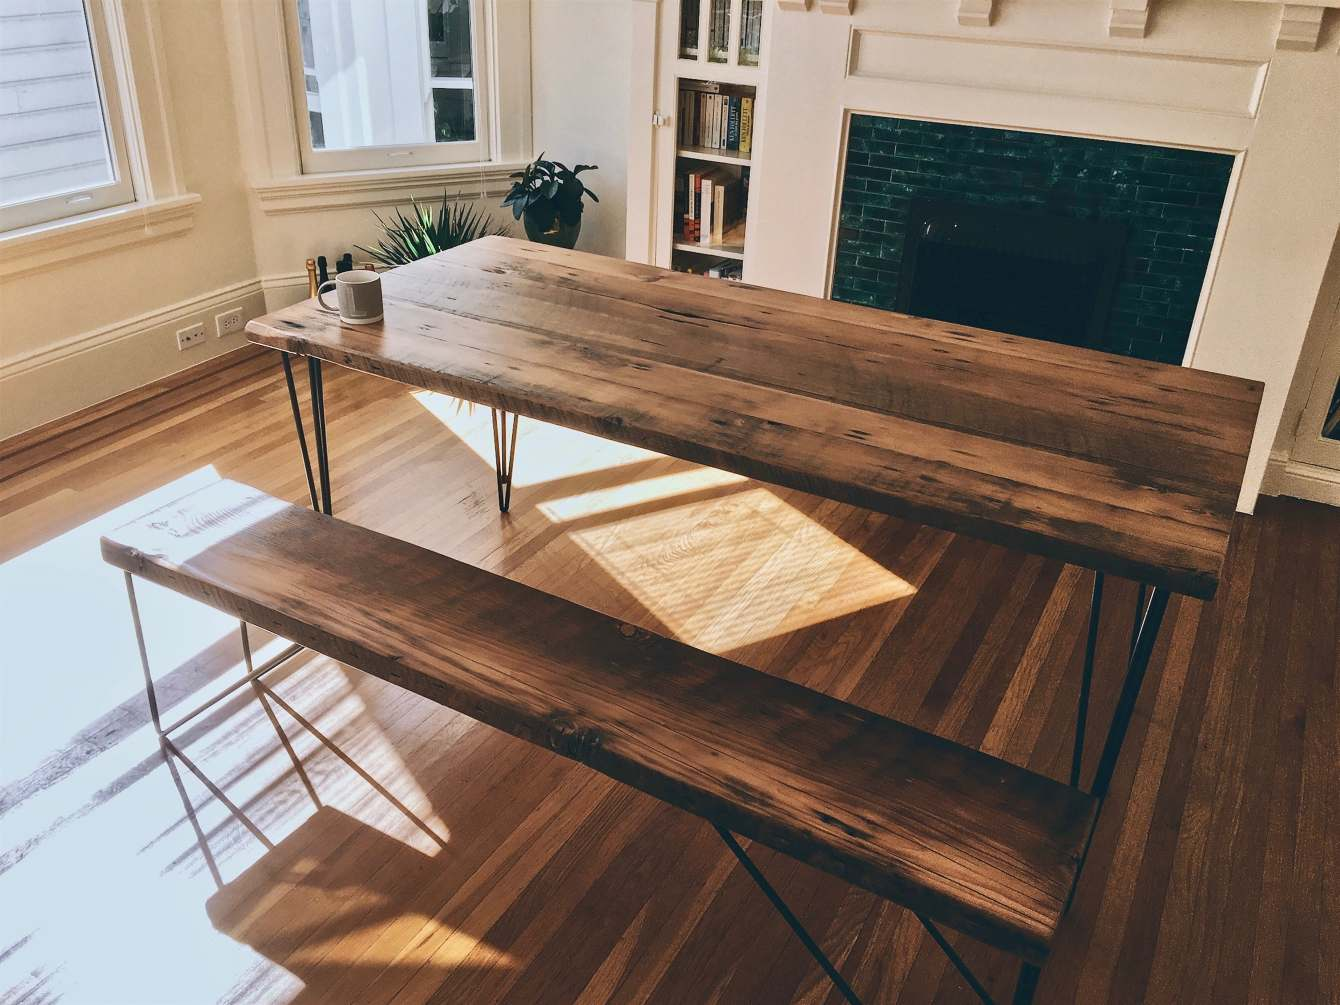 Enjoyable Reclaimed Wood Dining Table Set Ambrose Woodworks Dailytribune Chair Design For Home Dailytribuneorg